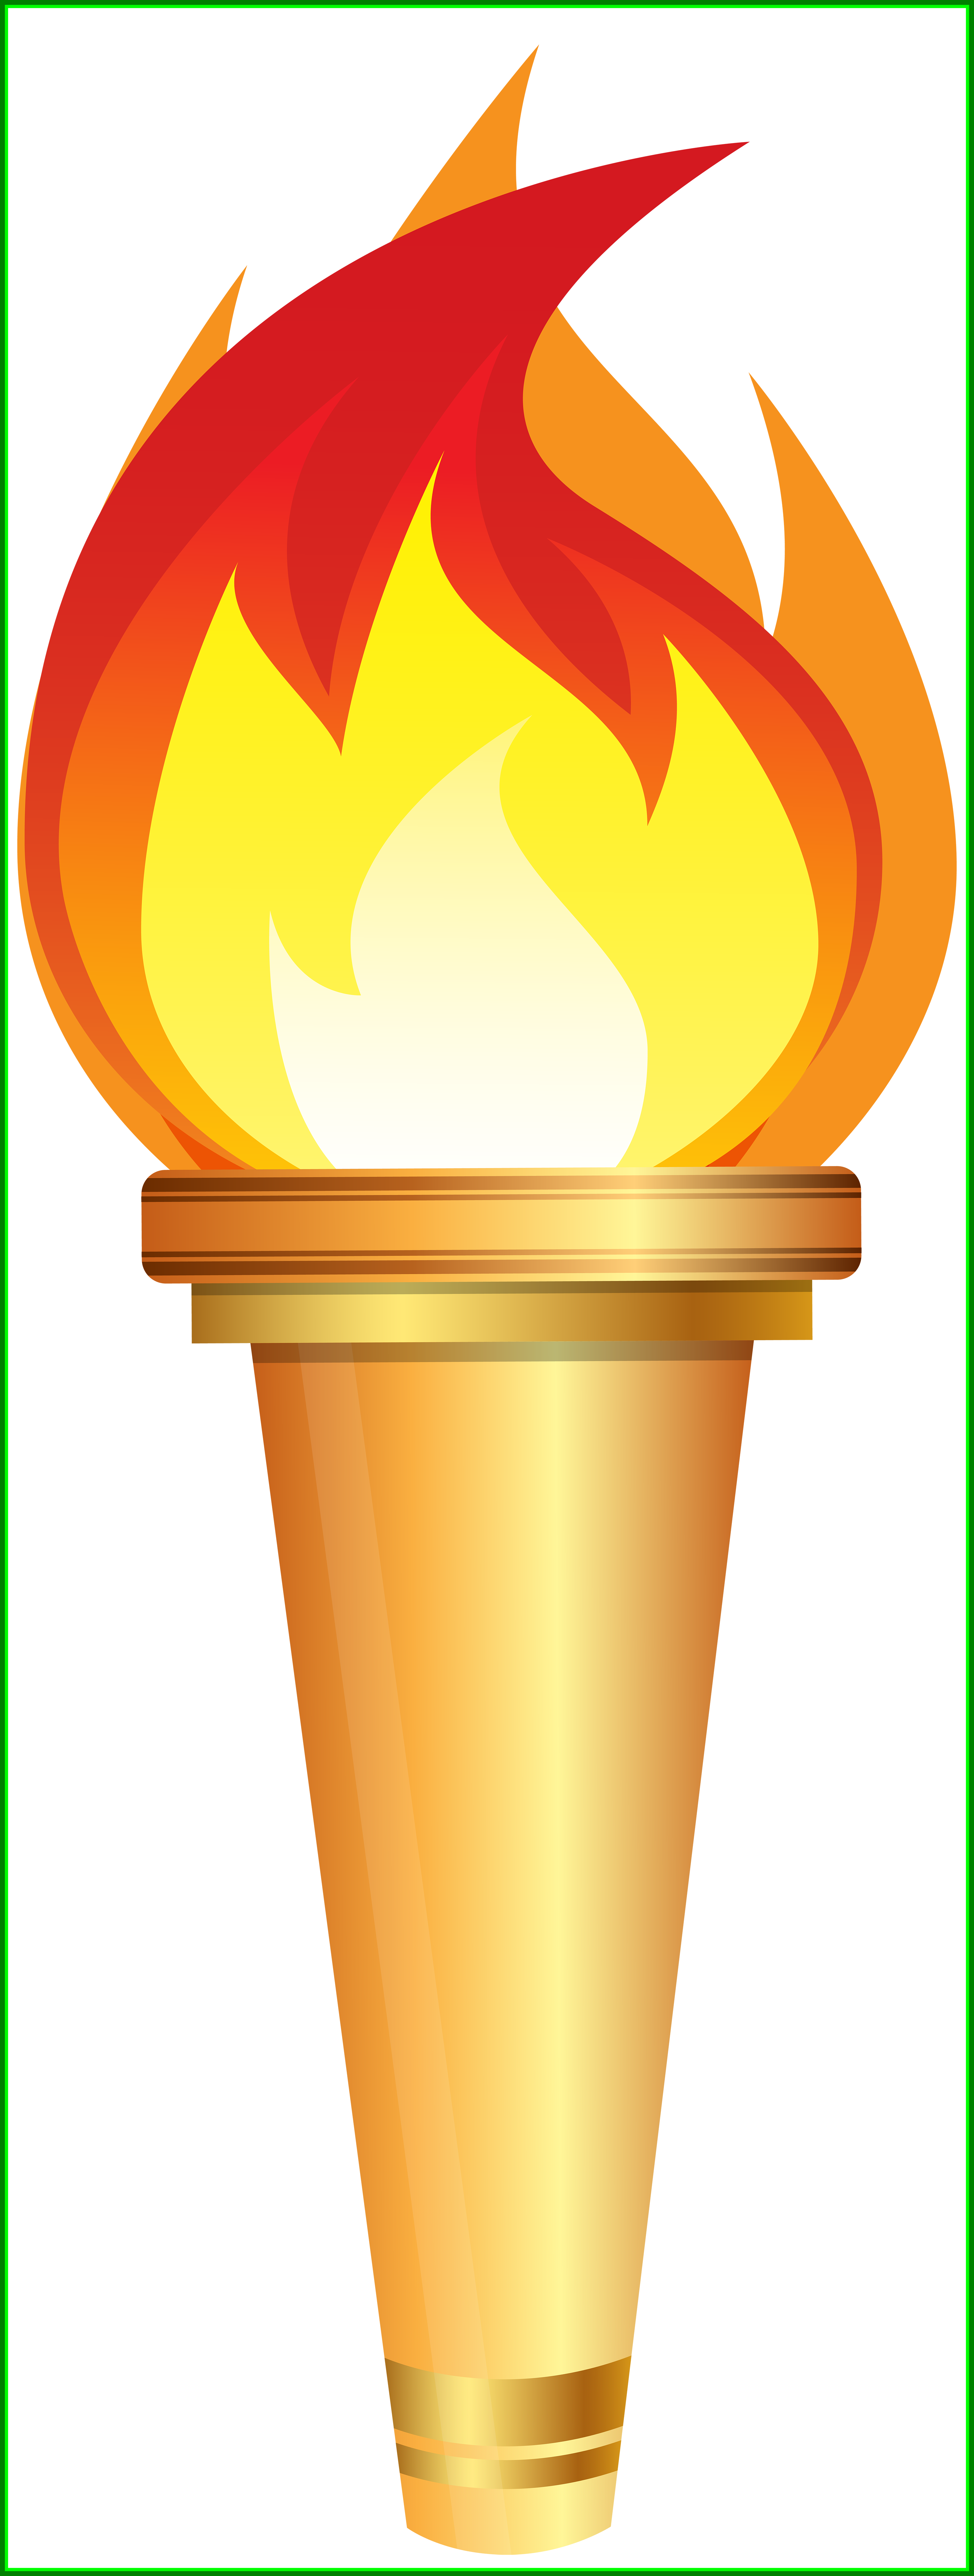 Torch clipart border. Shocking olympic png clip